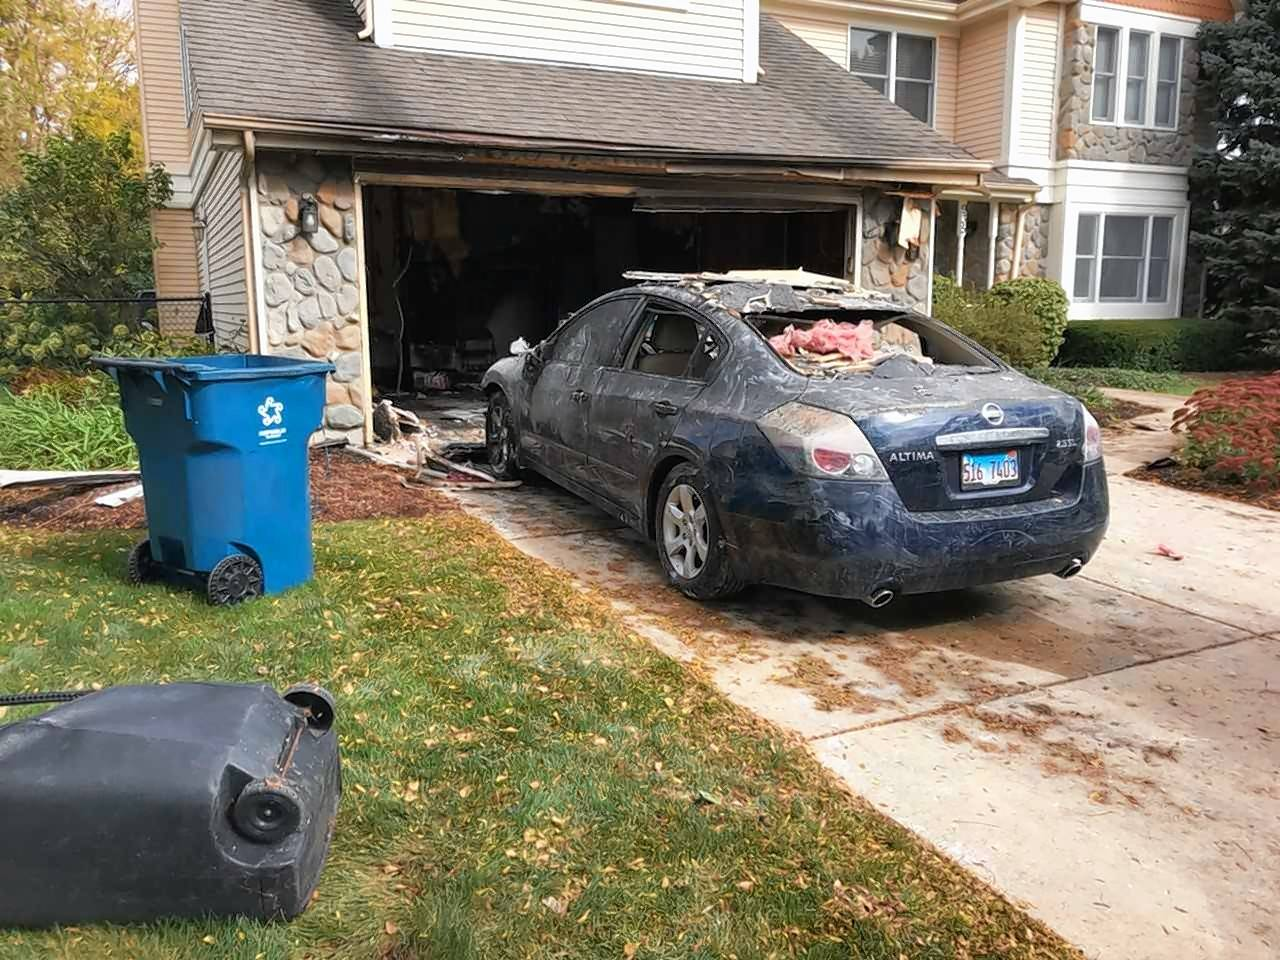 Crews responded about 11:45 a.m. Thursday to a home on the 900 block of McConnoche Court in West Dundee to find heavy smoke and fire coming from the two-car garage.